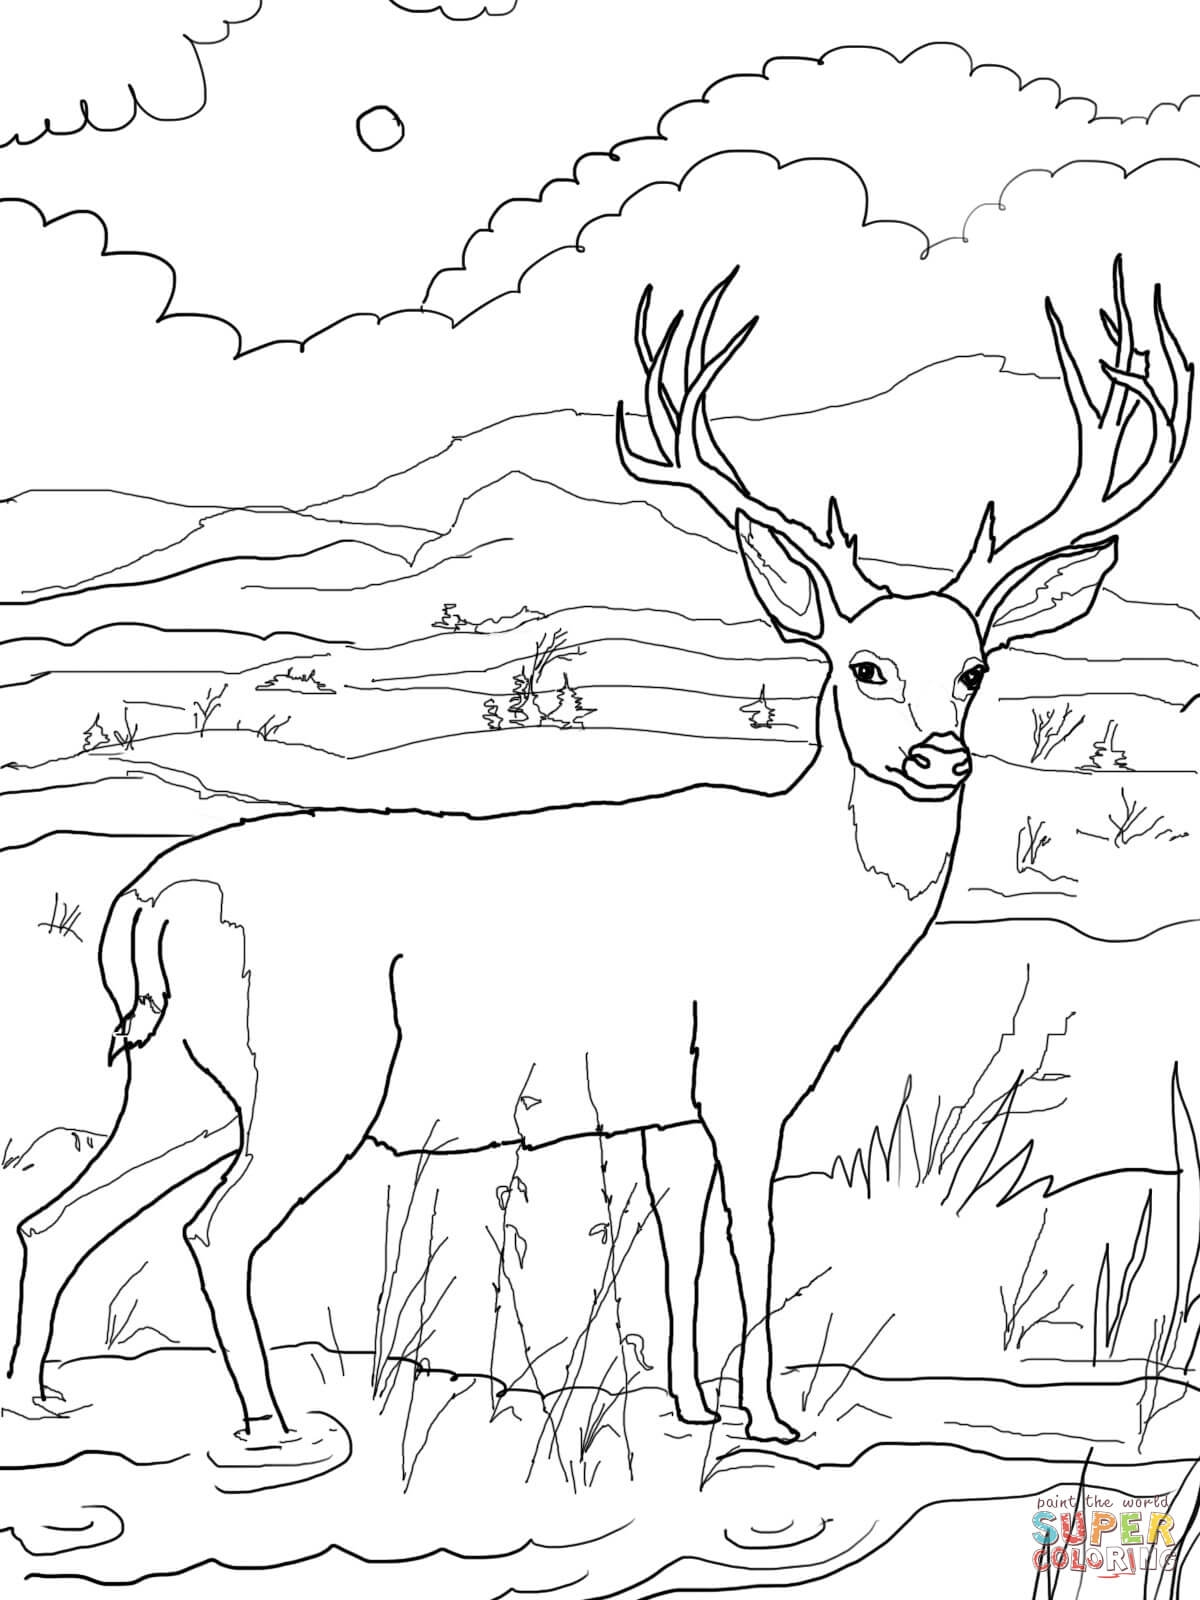 hunting coloring sheets printable hunting coloring pages for kids cool2bkids sheets hunting coloring 1 2